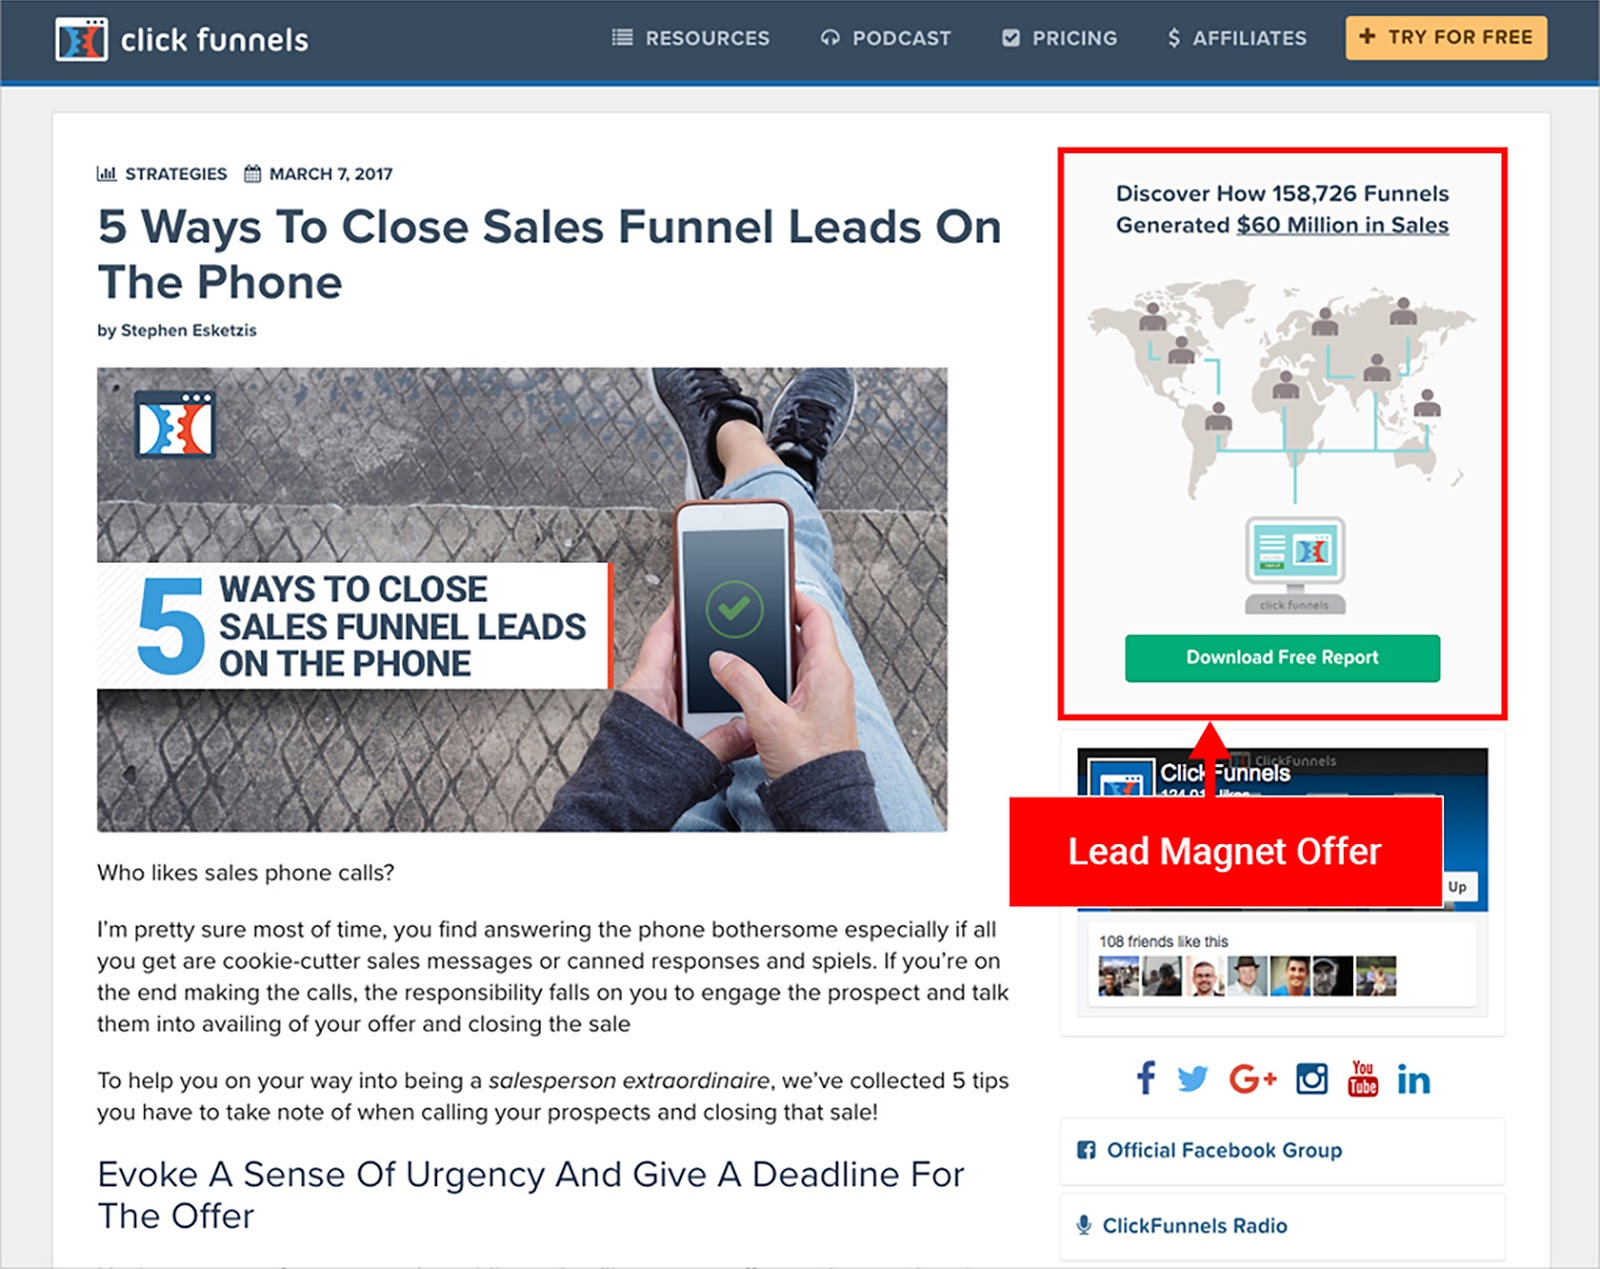 Image of an example from ClickFunnel